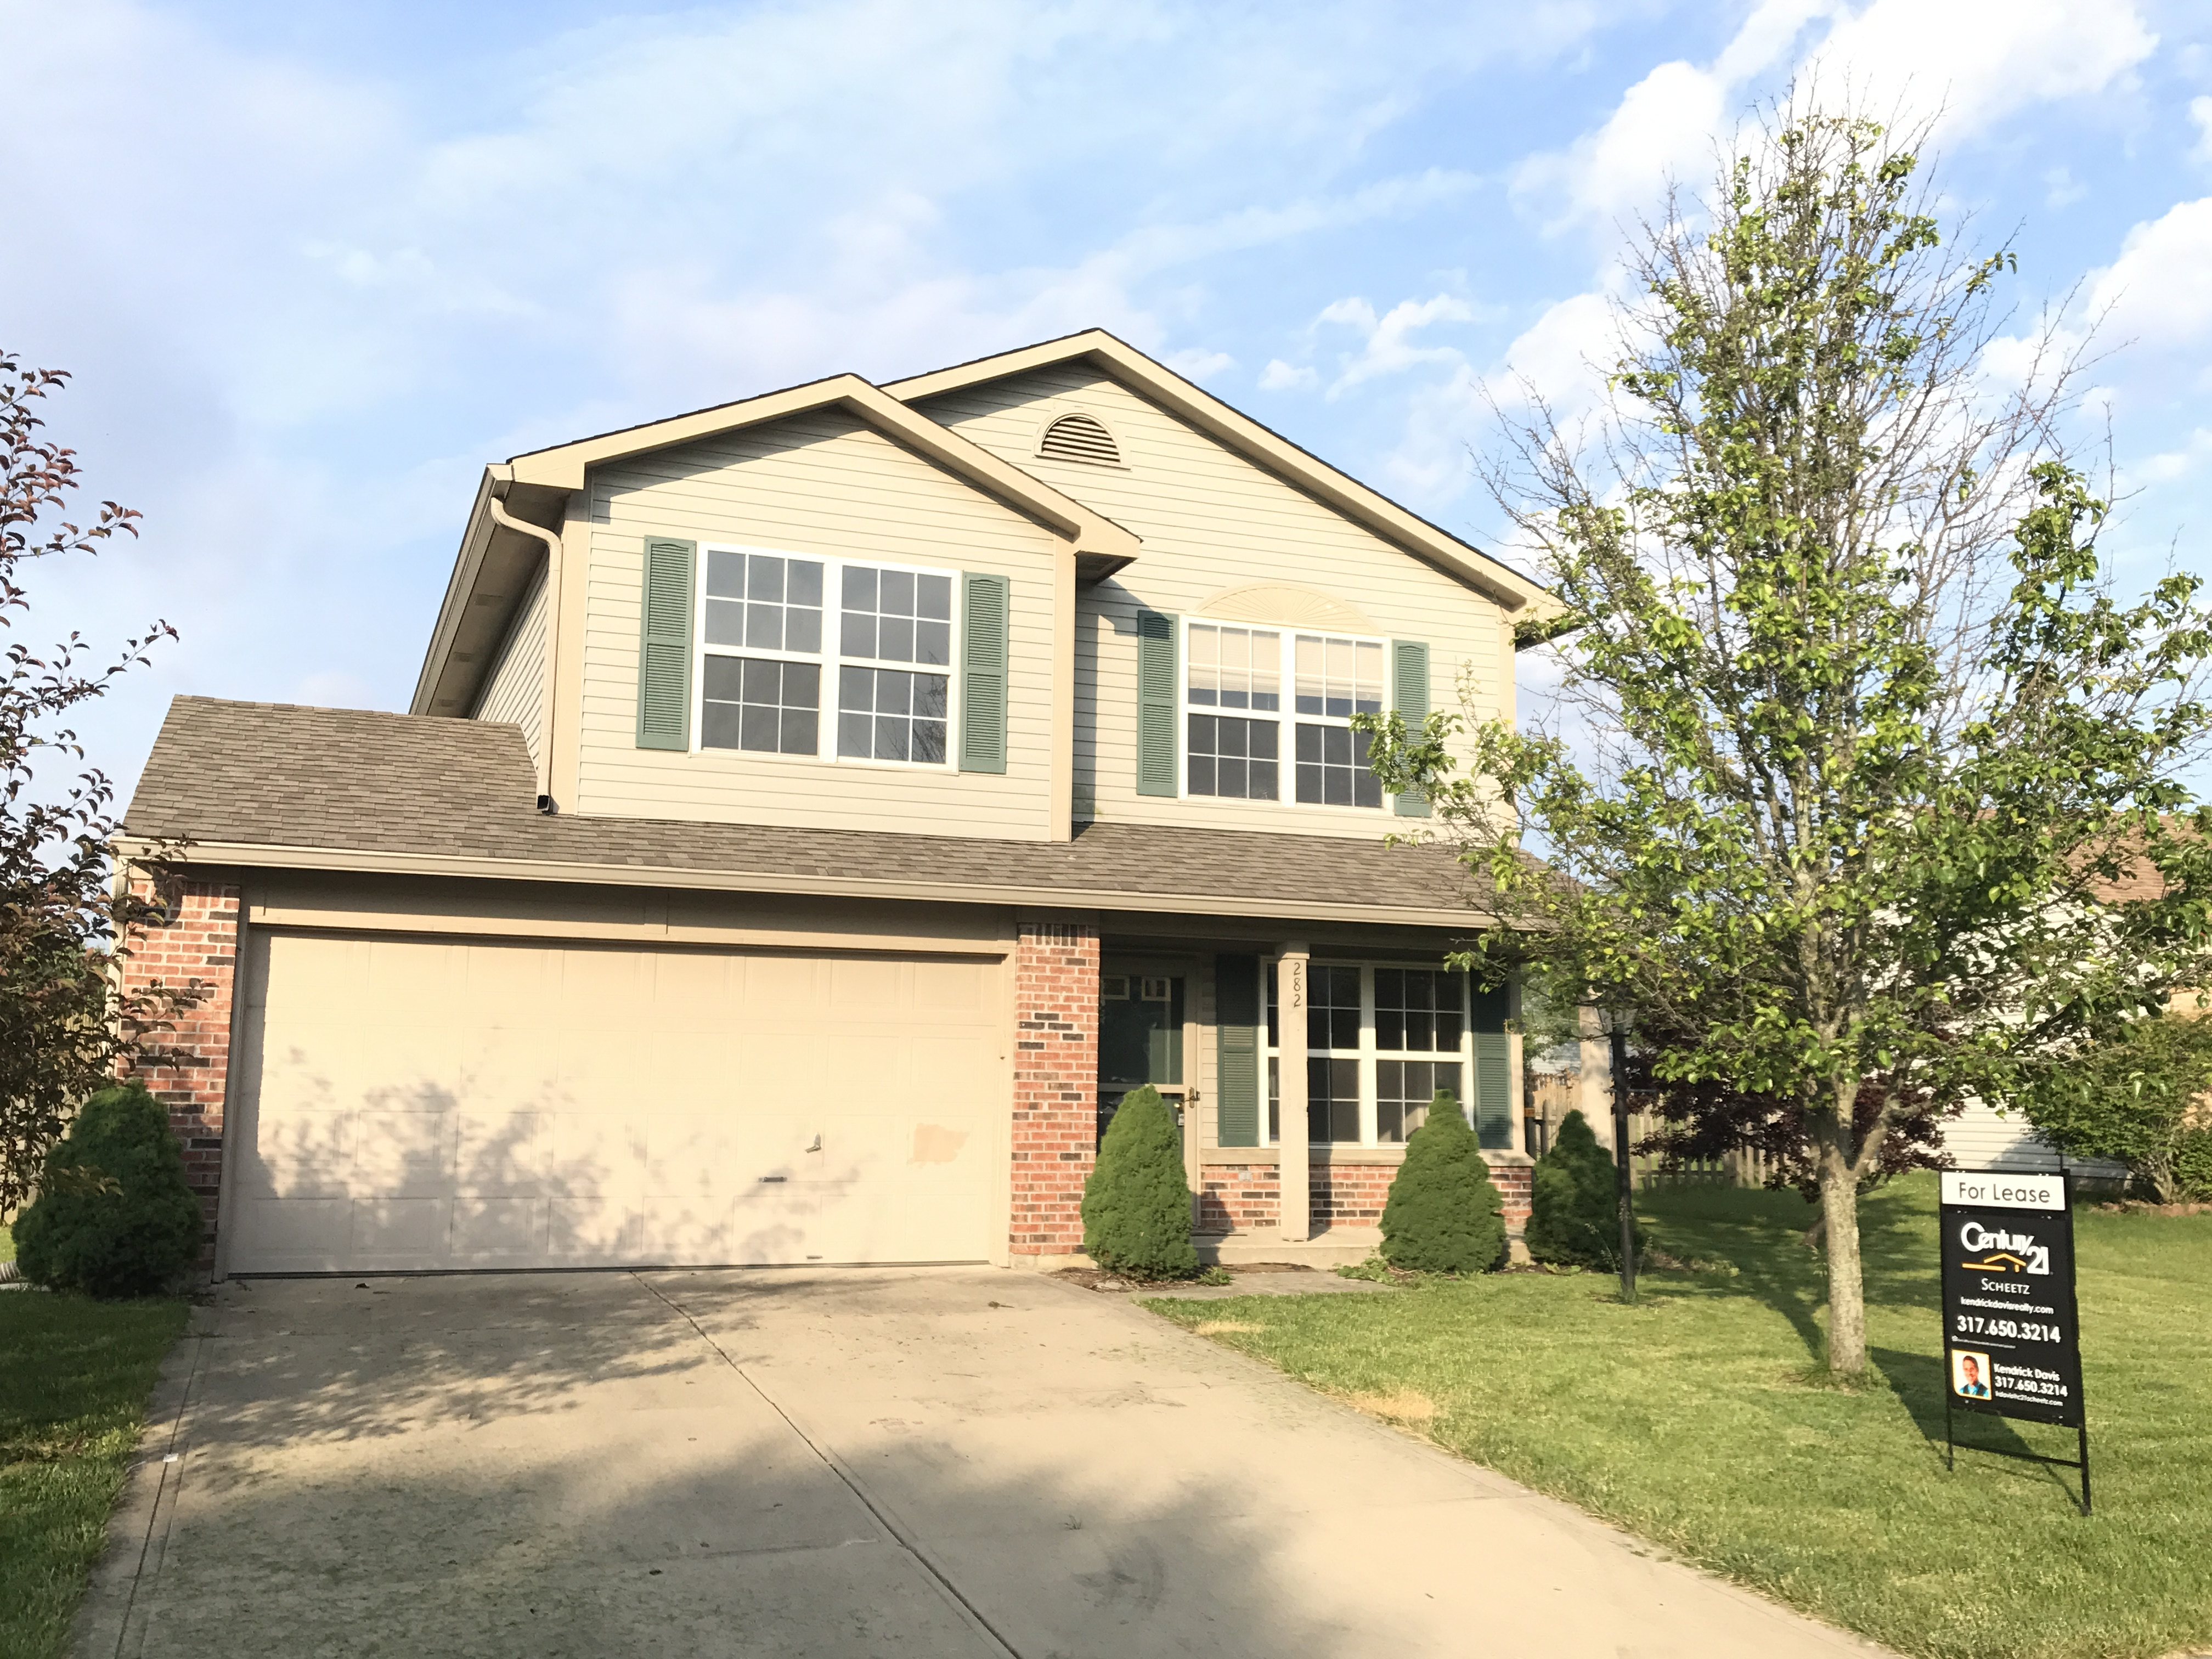 Photo of 282 E Brixton Woods Dr, Pittsboro, IN, 46167